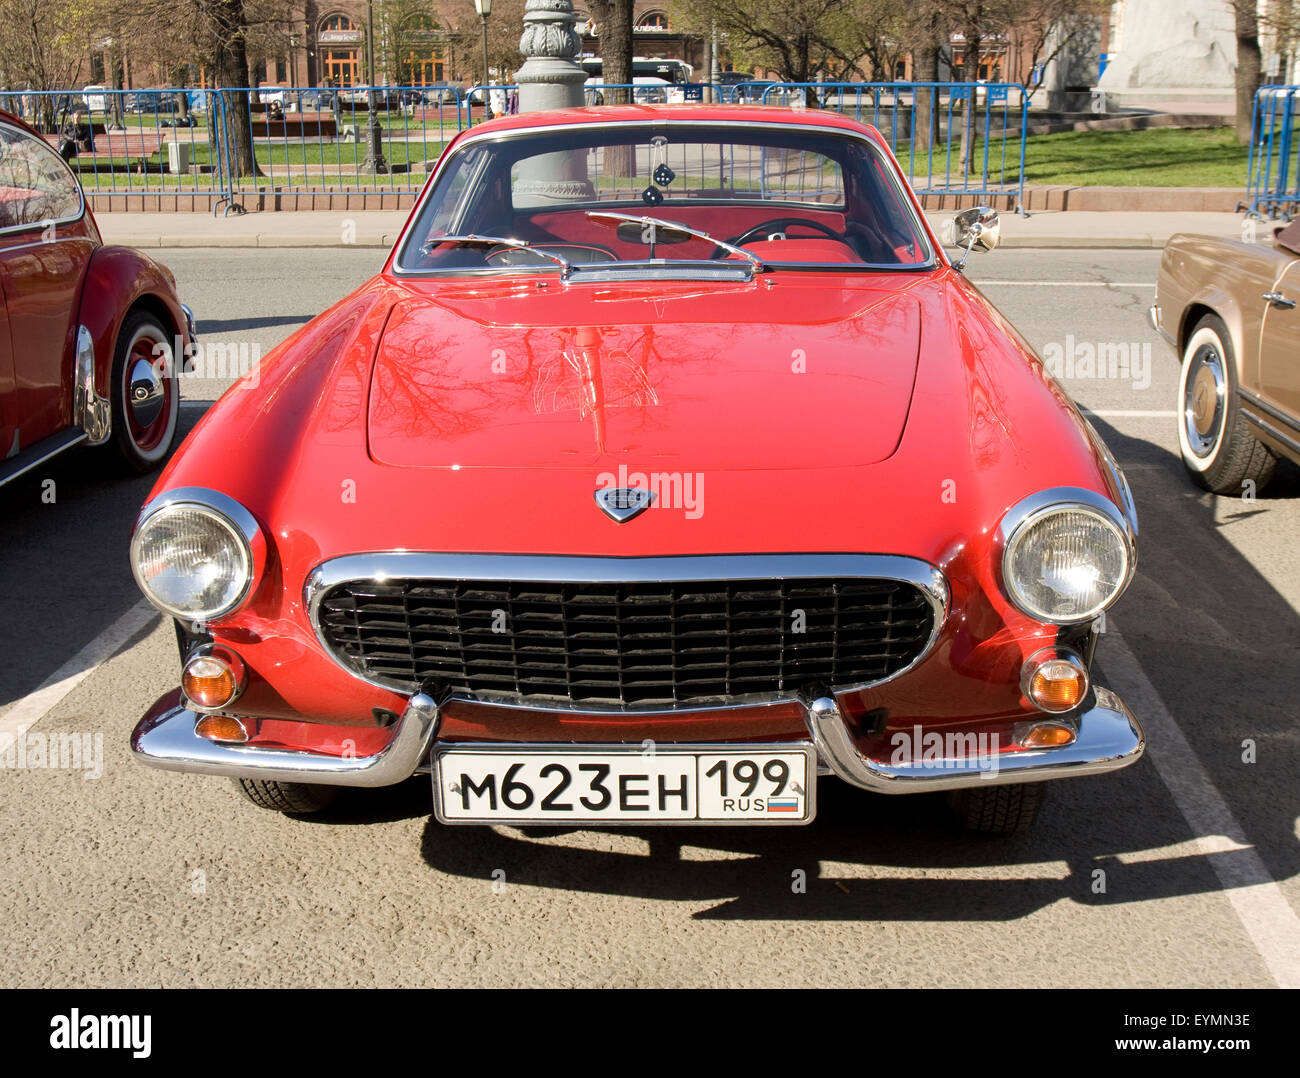 Old Volvo Car Stock Photos & Old Volvo Car Stock Images ...